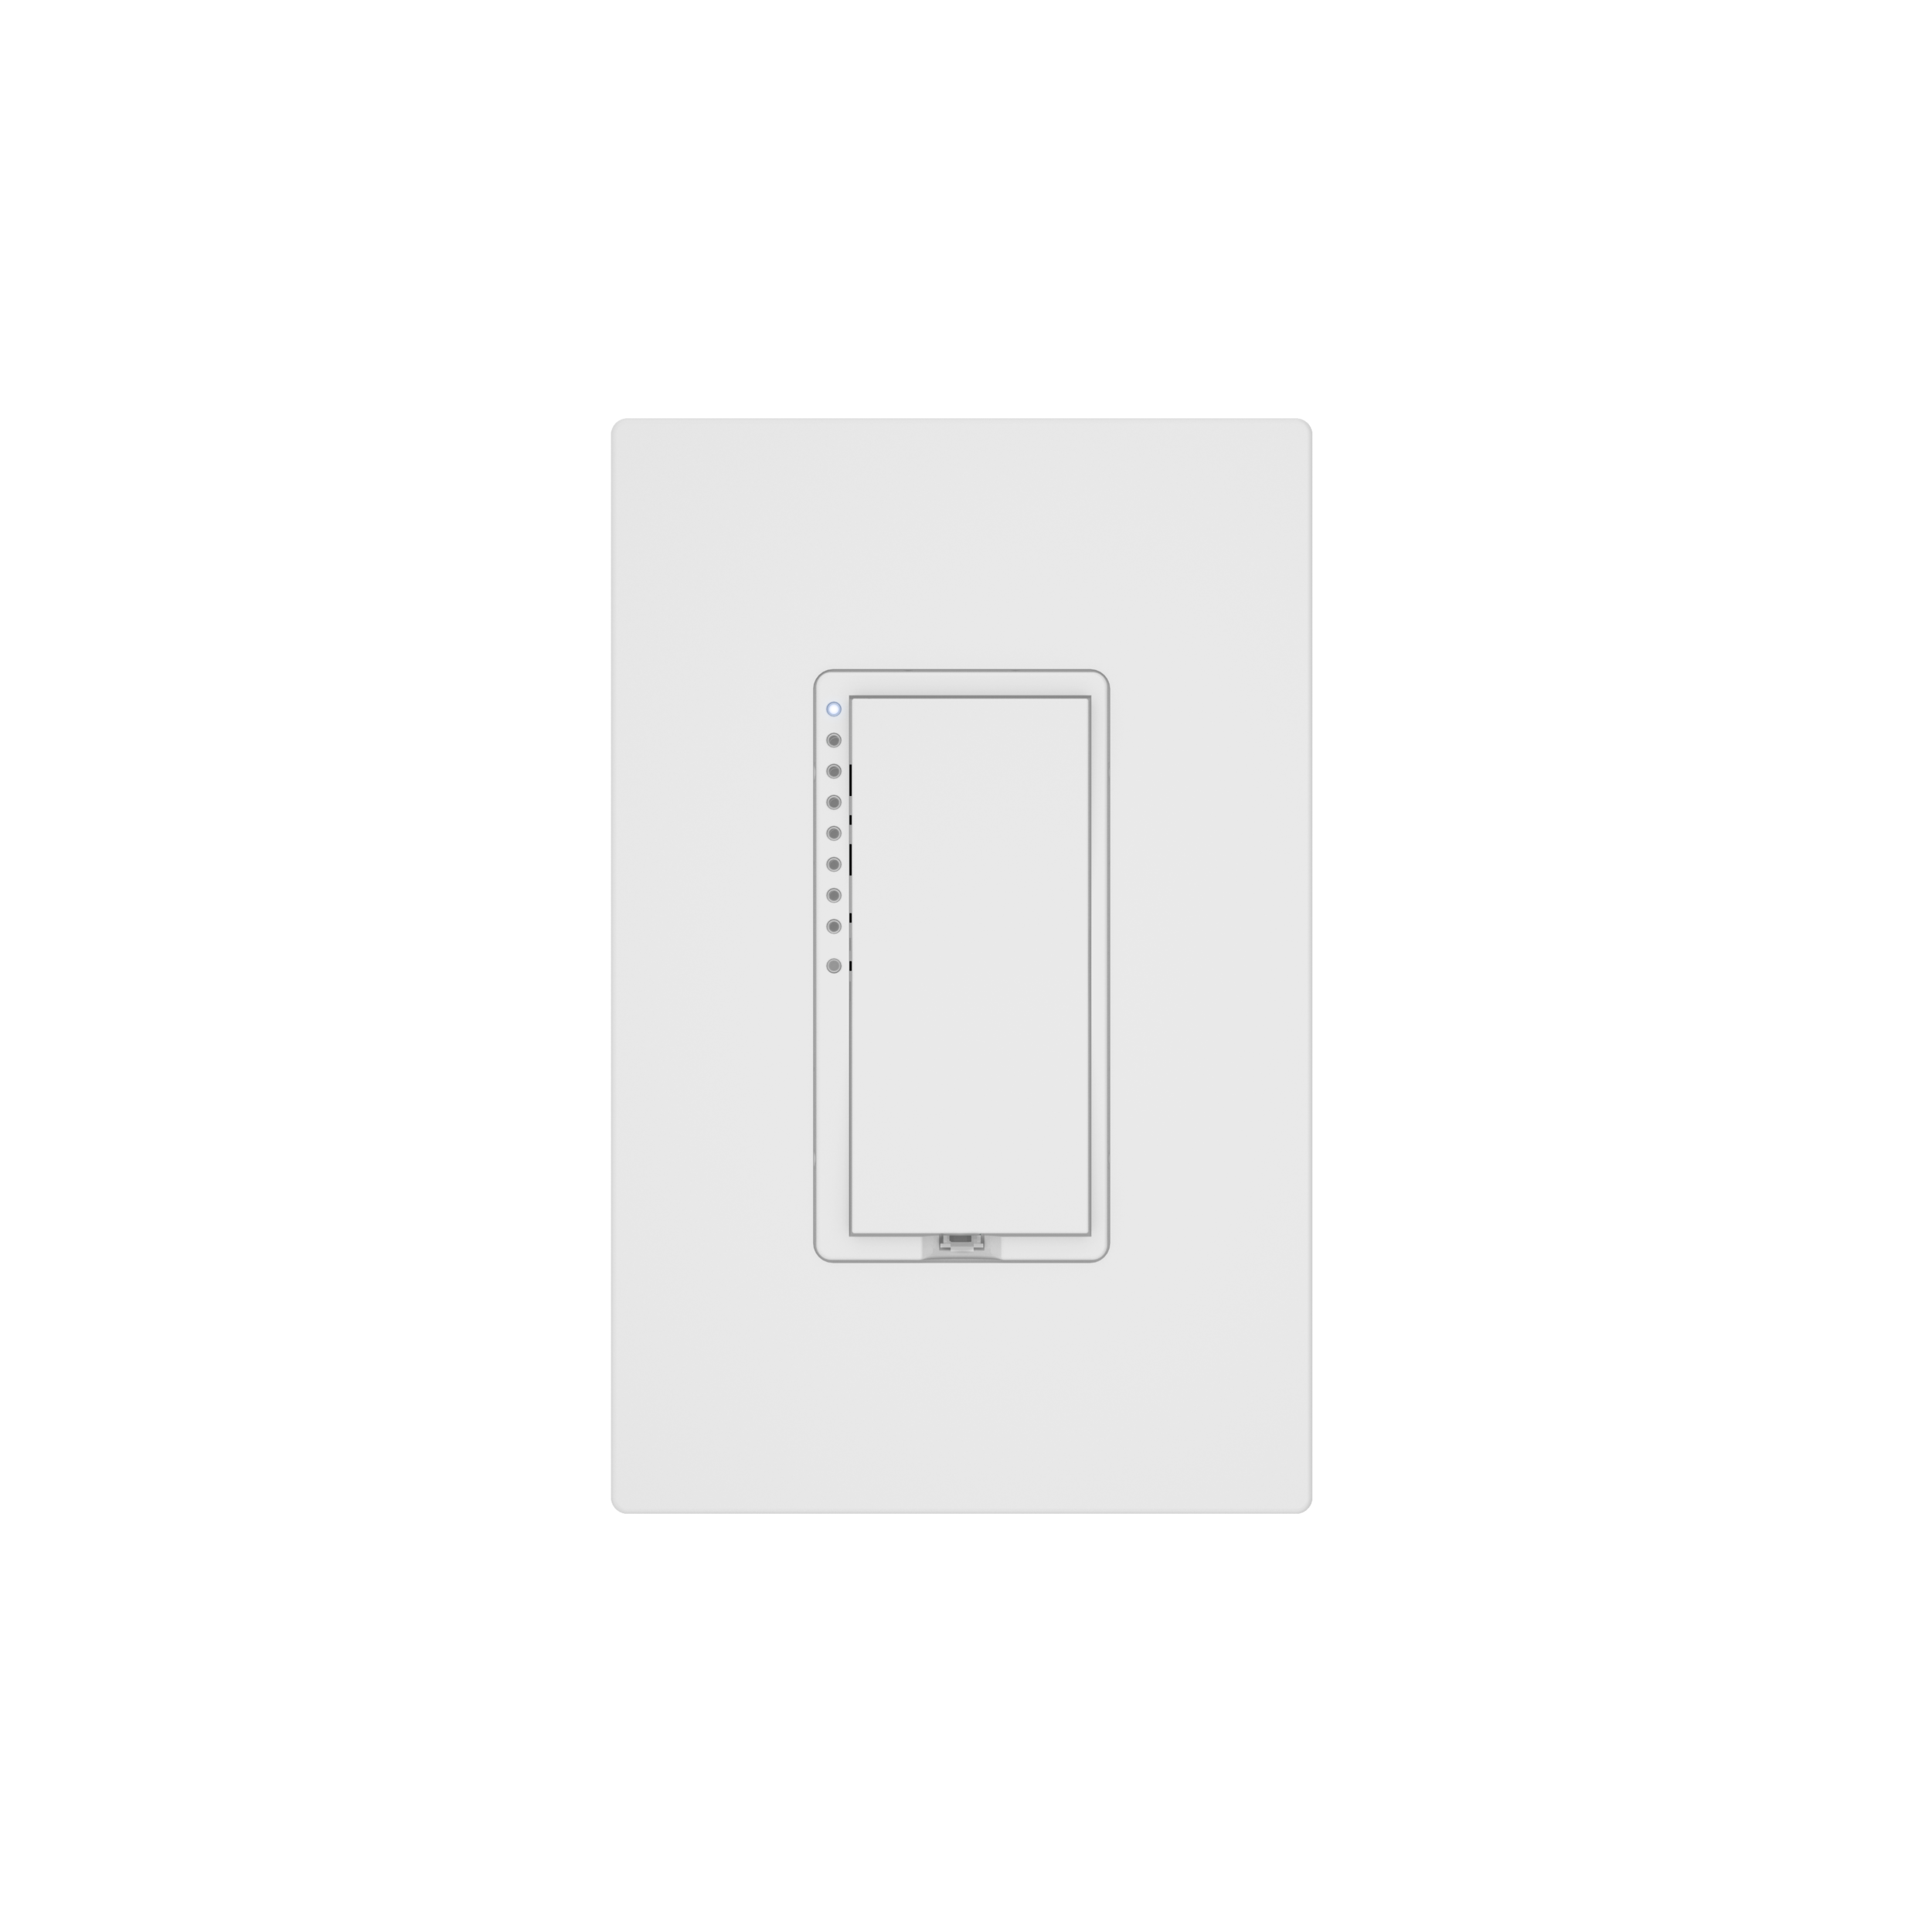 Dimmer Switch 01.png